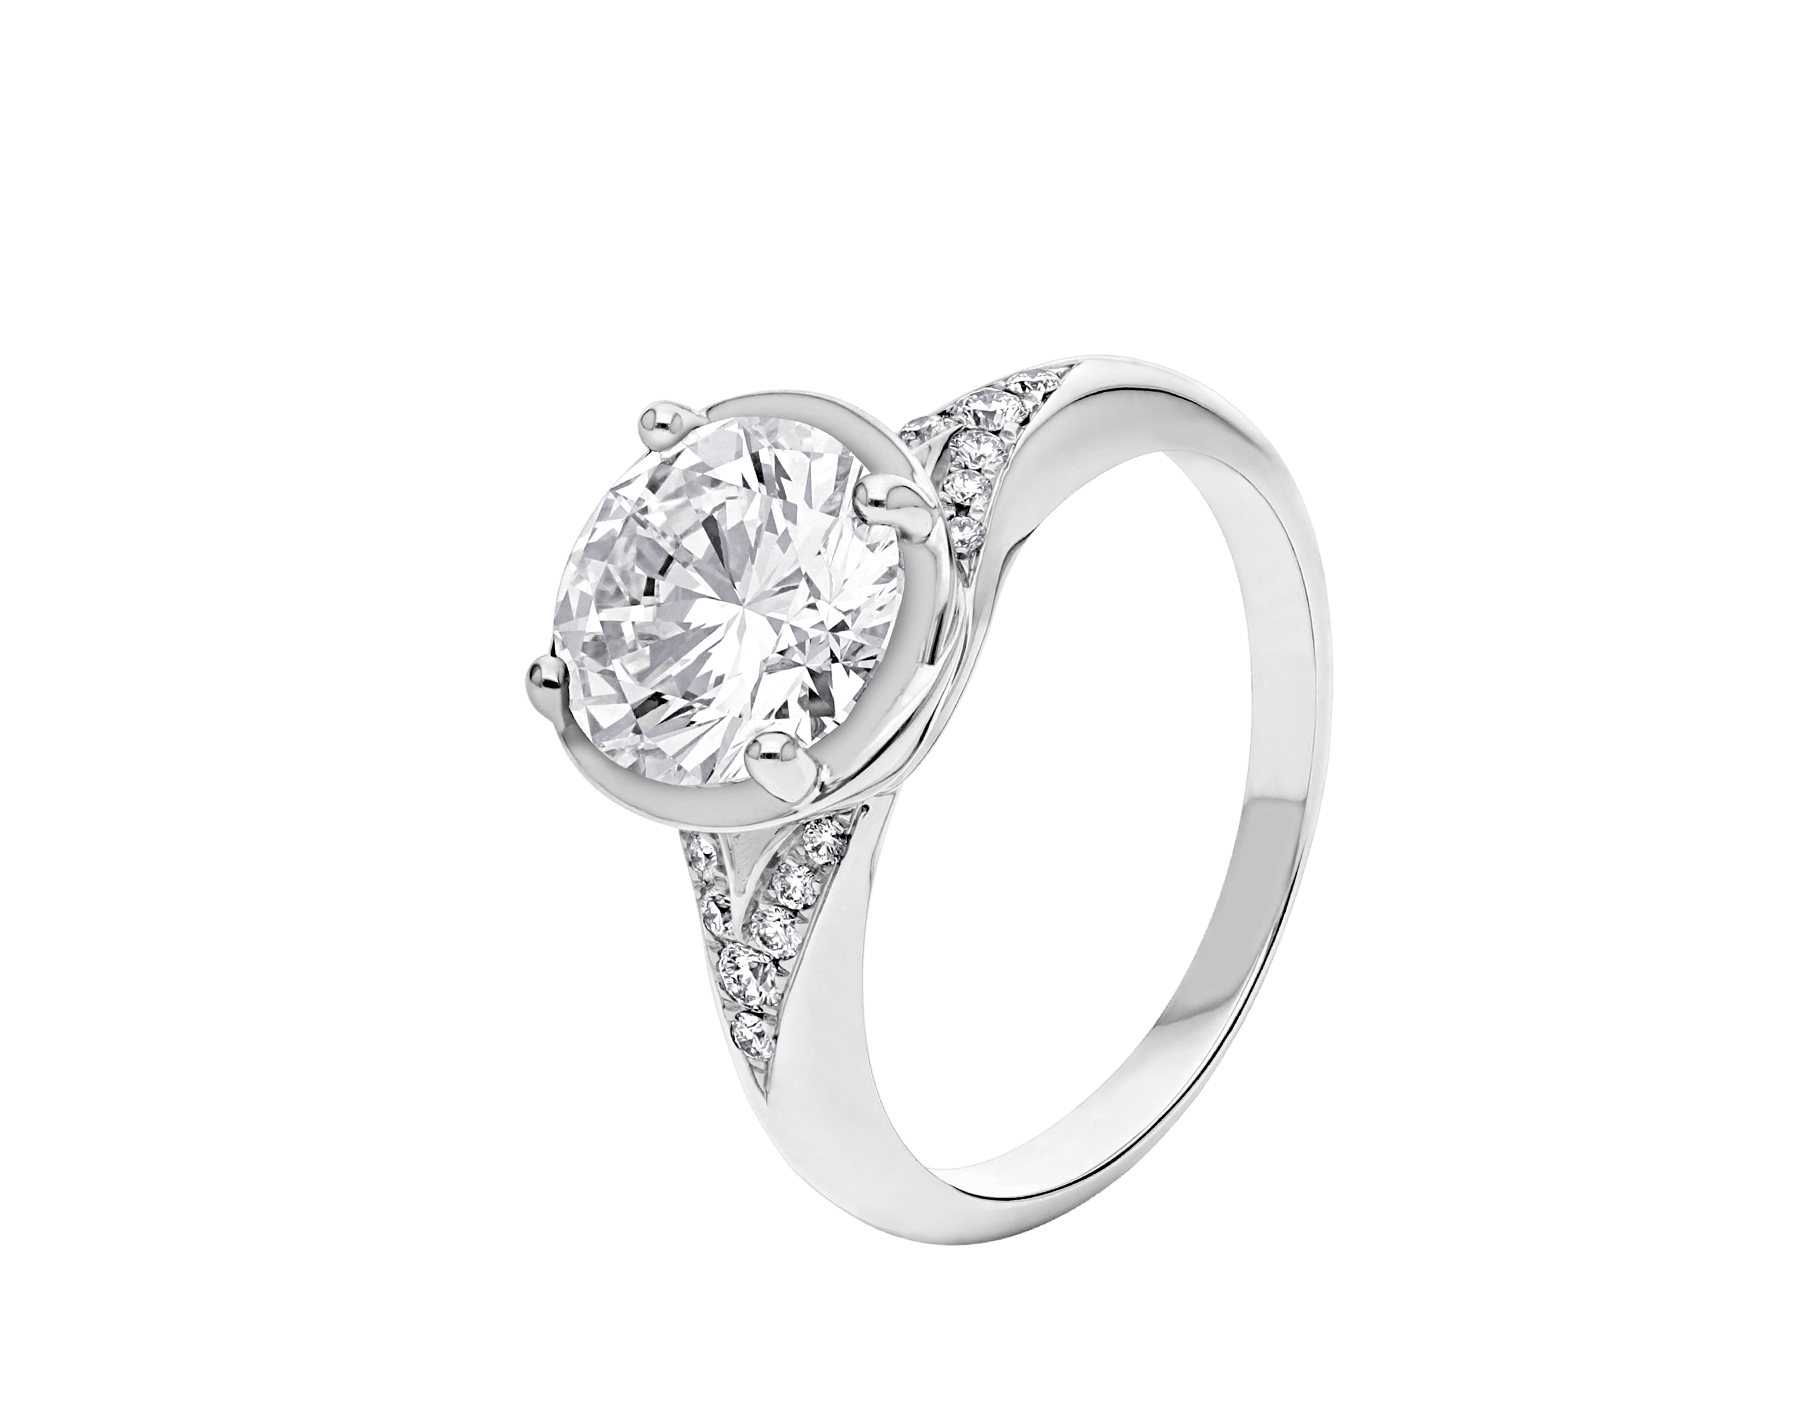 Incontro d'Amore ring in platinum with round brilliant-cut diamond and pavé diamonds. Available from 0.20 ct. As its pavé rows embrace a diamond apex, Incontro d'Amore joins two hearts as one. 355808 image 1